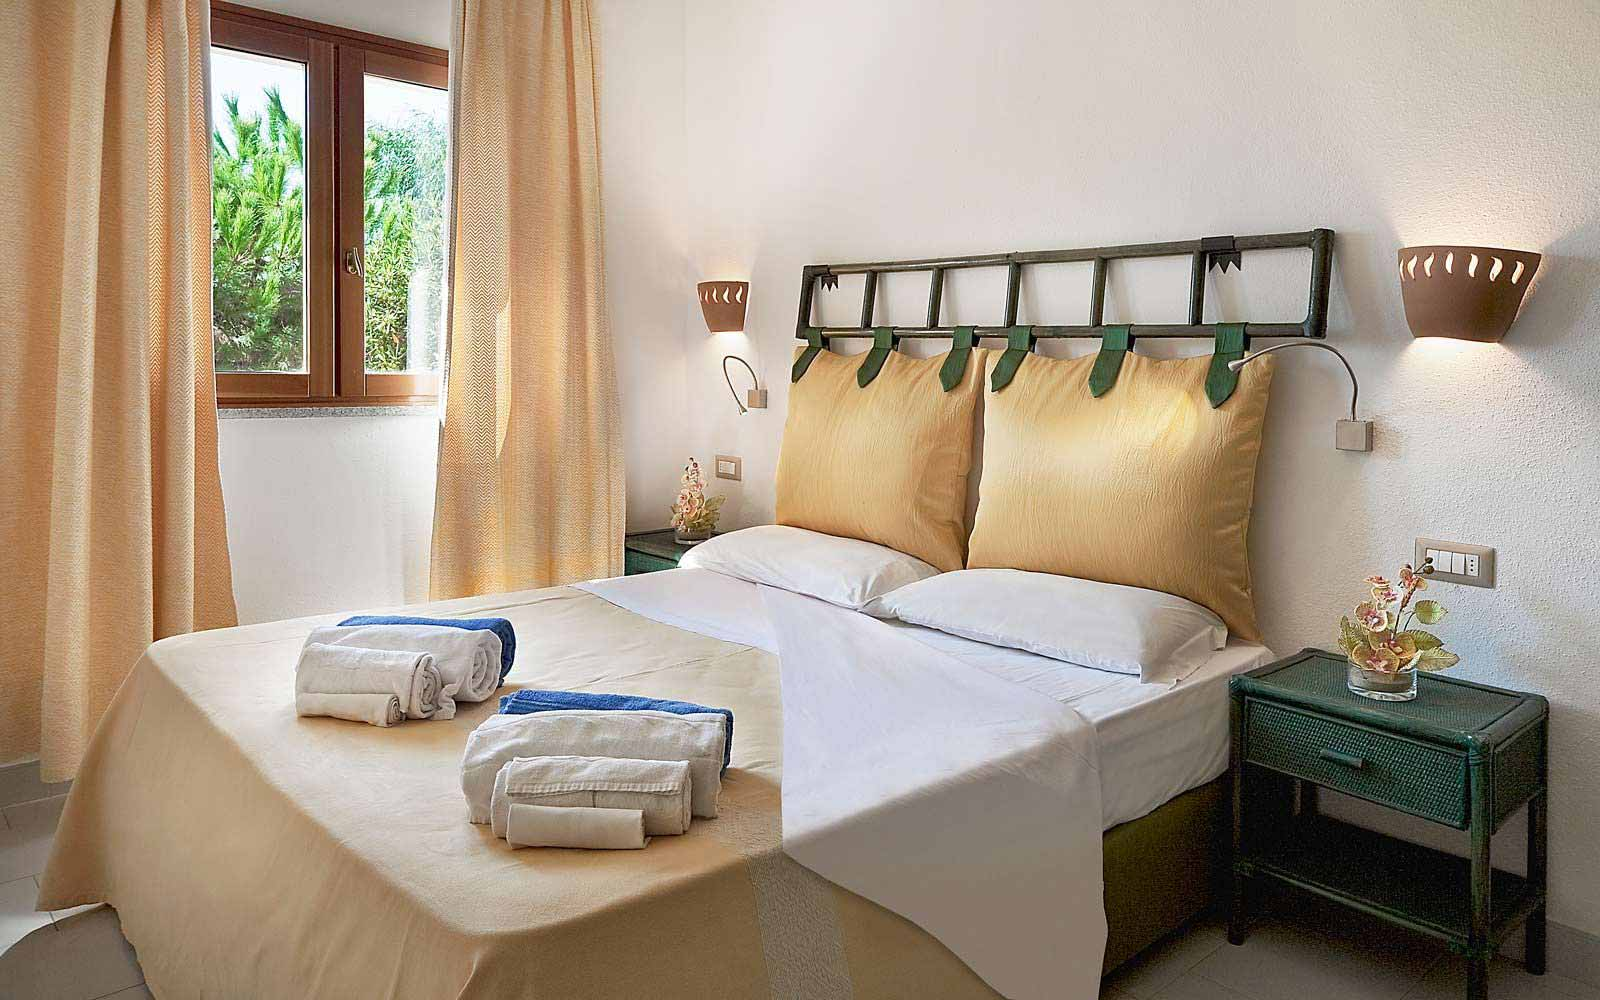 Superior double room at Resort & Spa Le Dune - Hotel I Ginepri